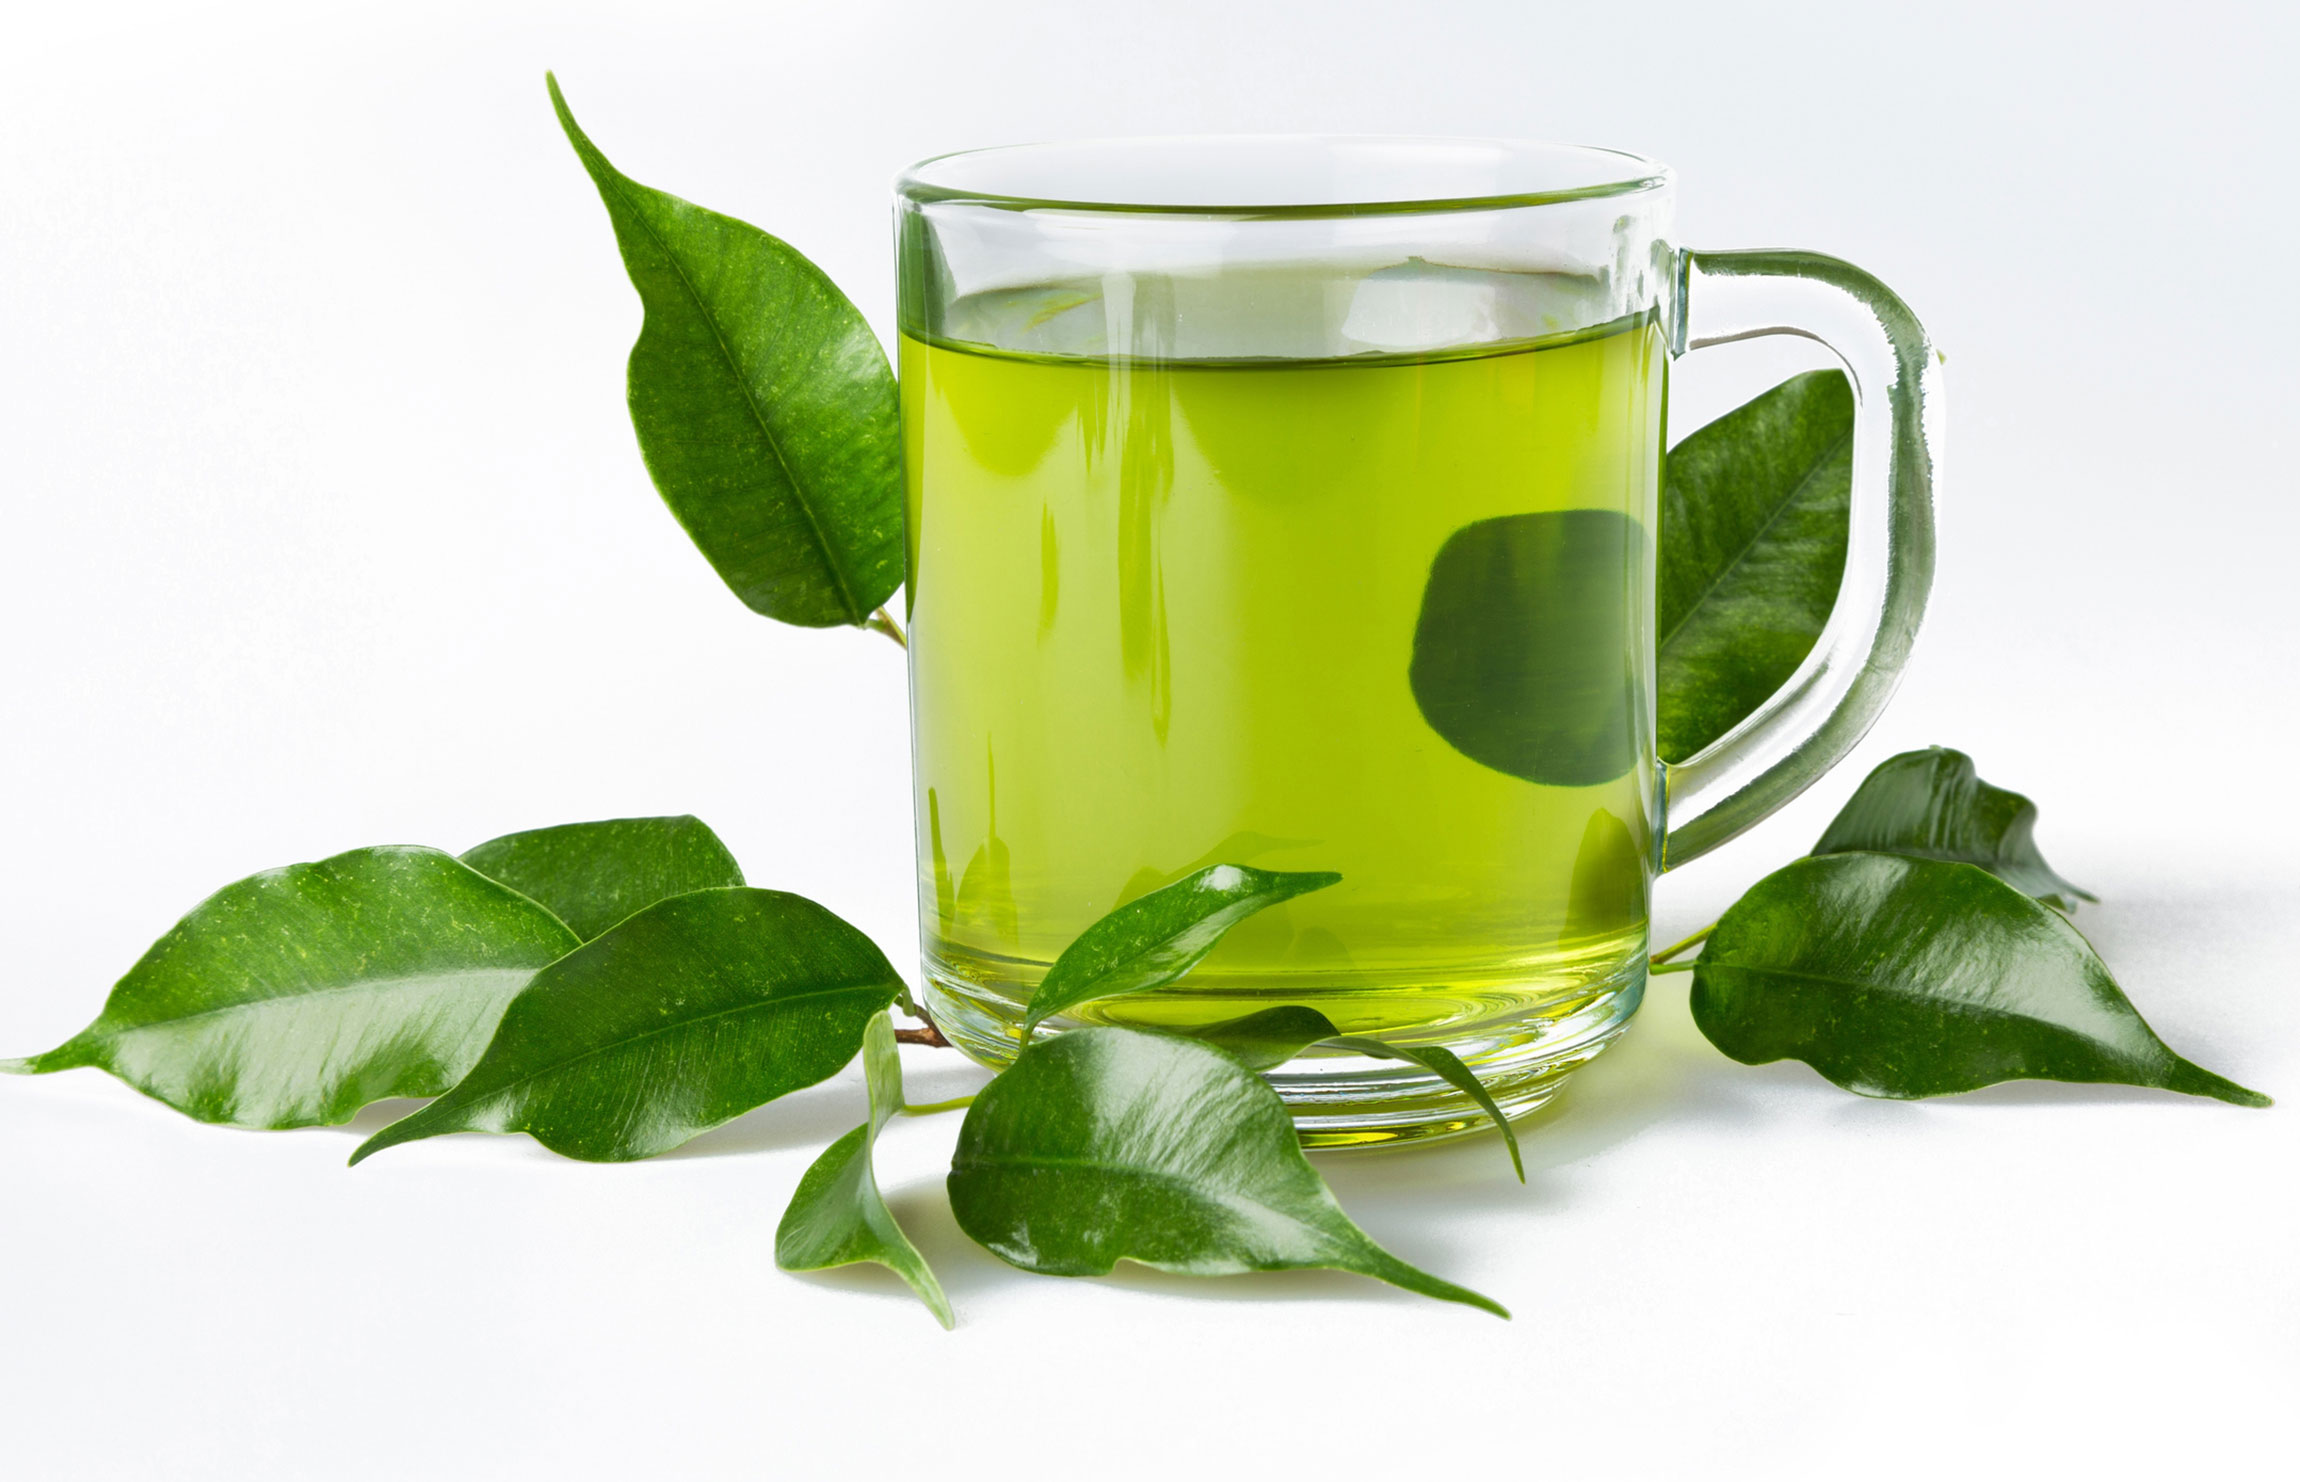 Foods for healthy skin: Green tea